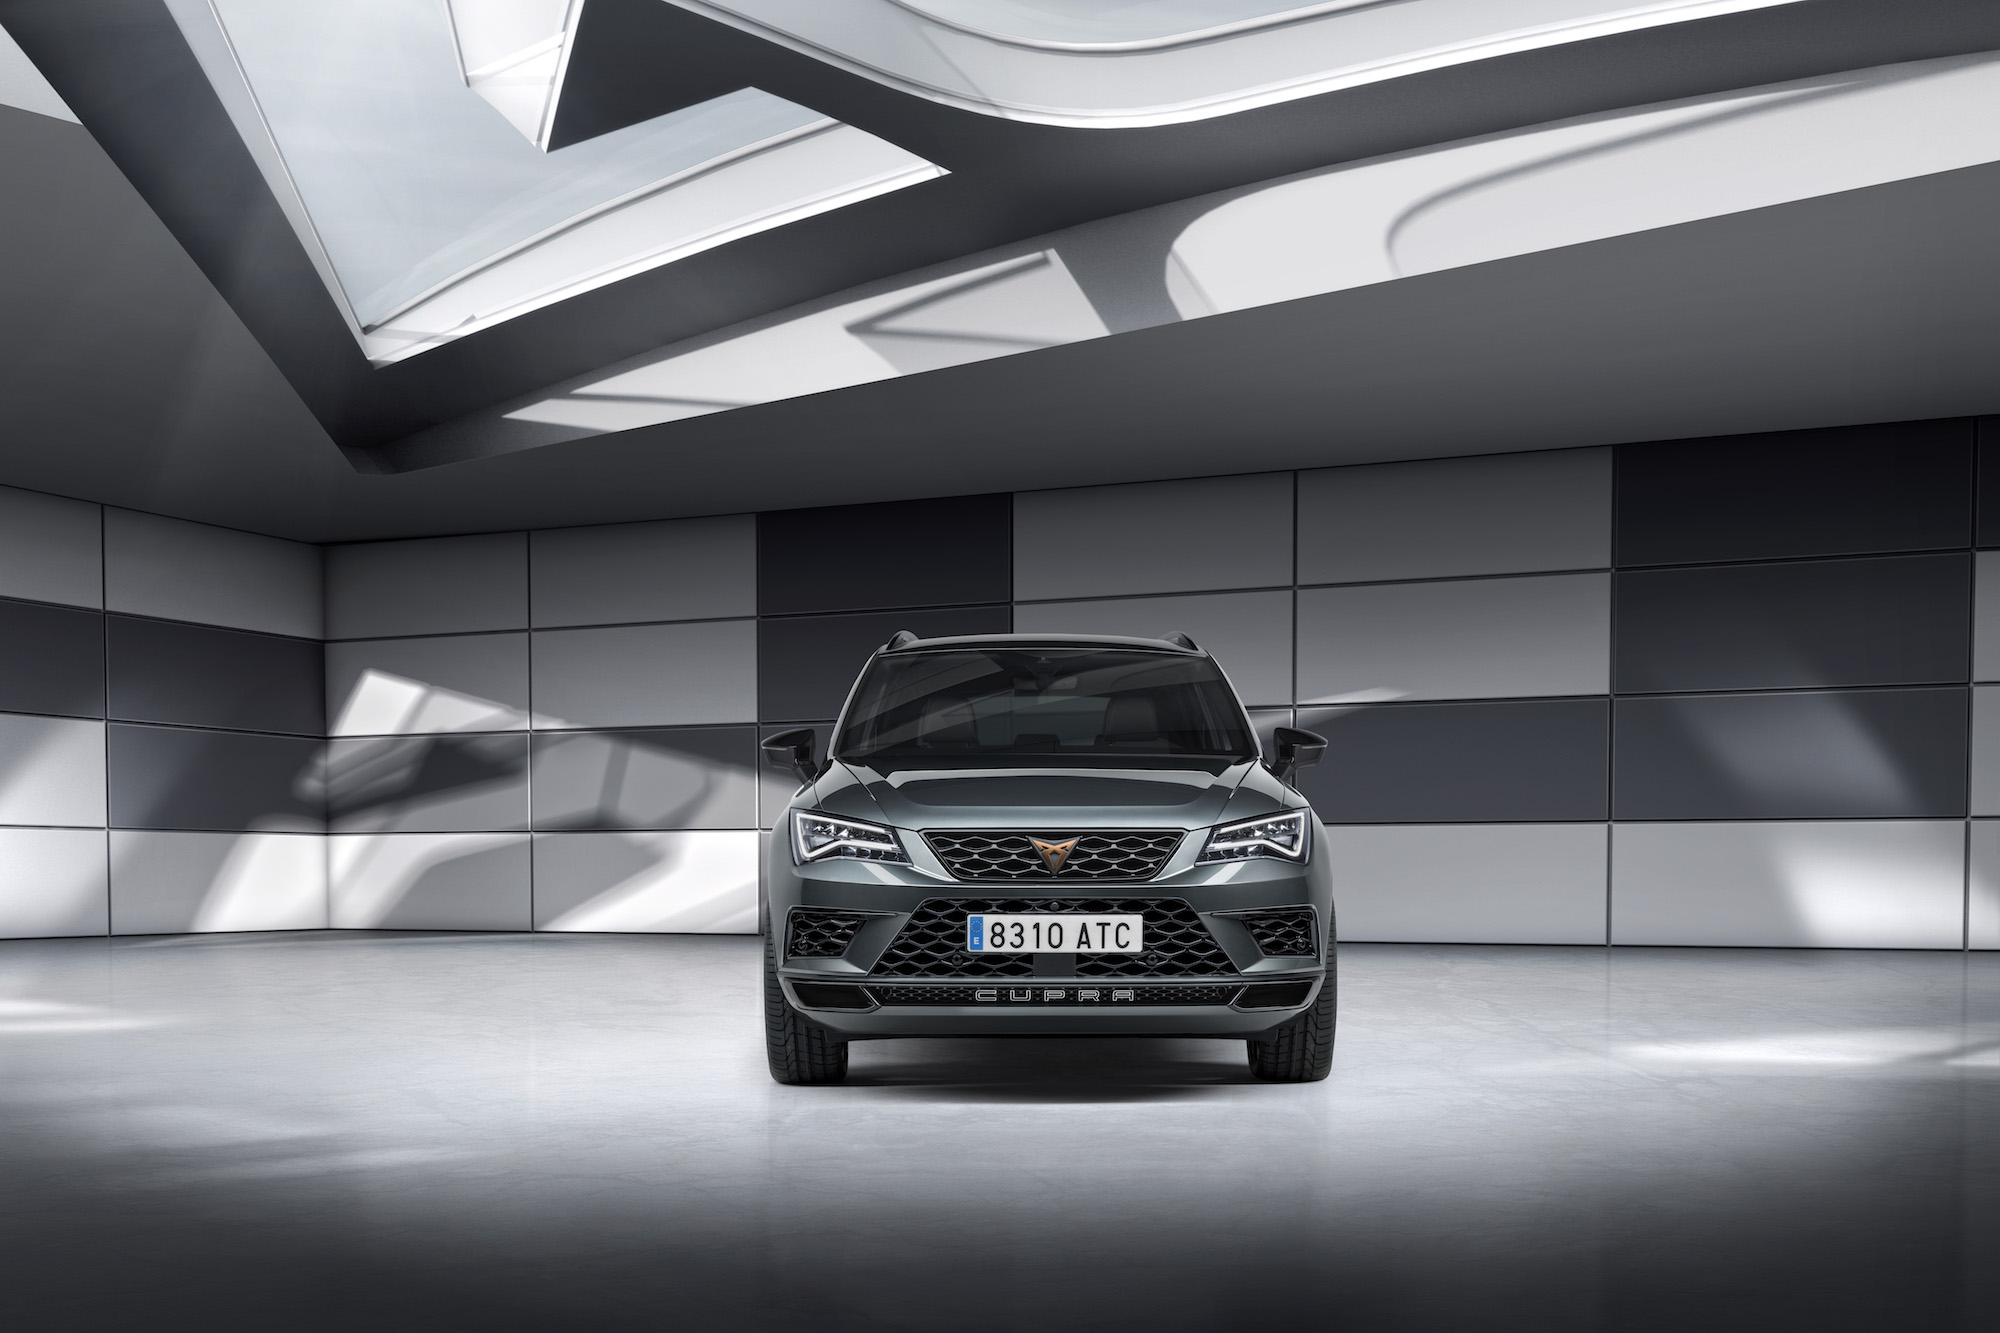 SEAT's performance brand kicks off its range with new sporty Ateca